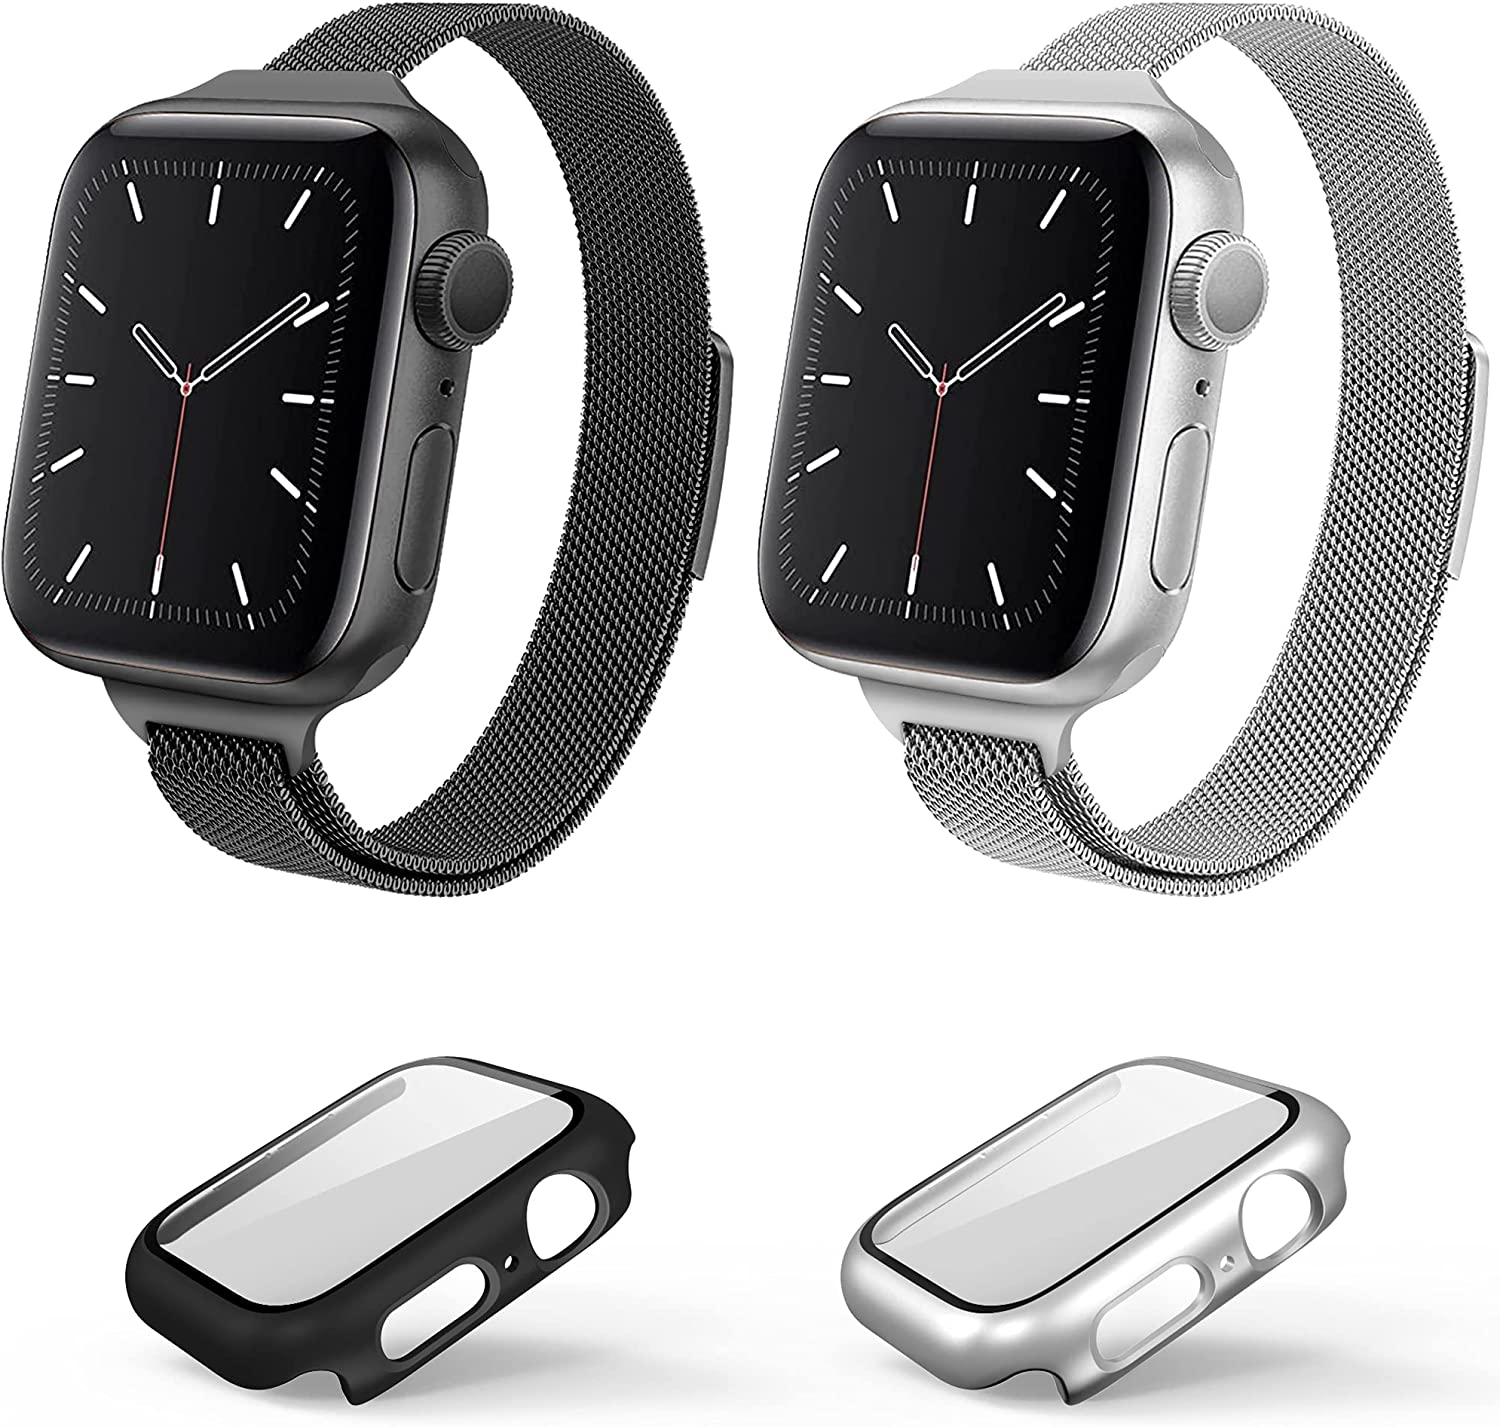 Metal Watch Band Compatible for Apple Watch Bands 38mm 40mm 42mm 44mm + Case,Slim & Thin Magnetic Stainless Steel Mesh Loop Band with Cases Built in Tempered Glass Screen Protector for iWatch Series SE/6/5/4/3/2/1,2 Pack